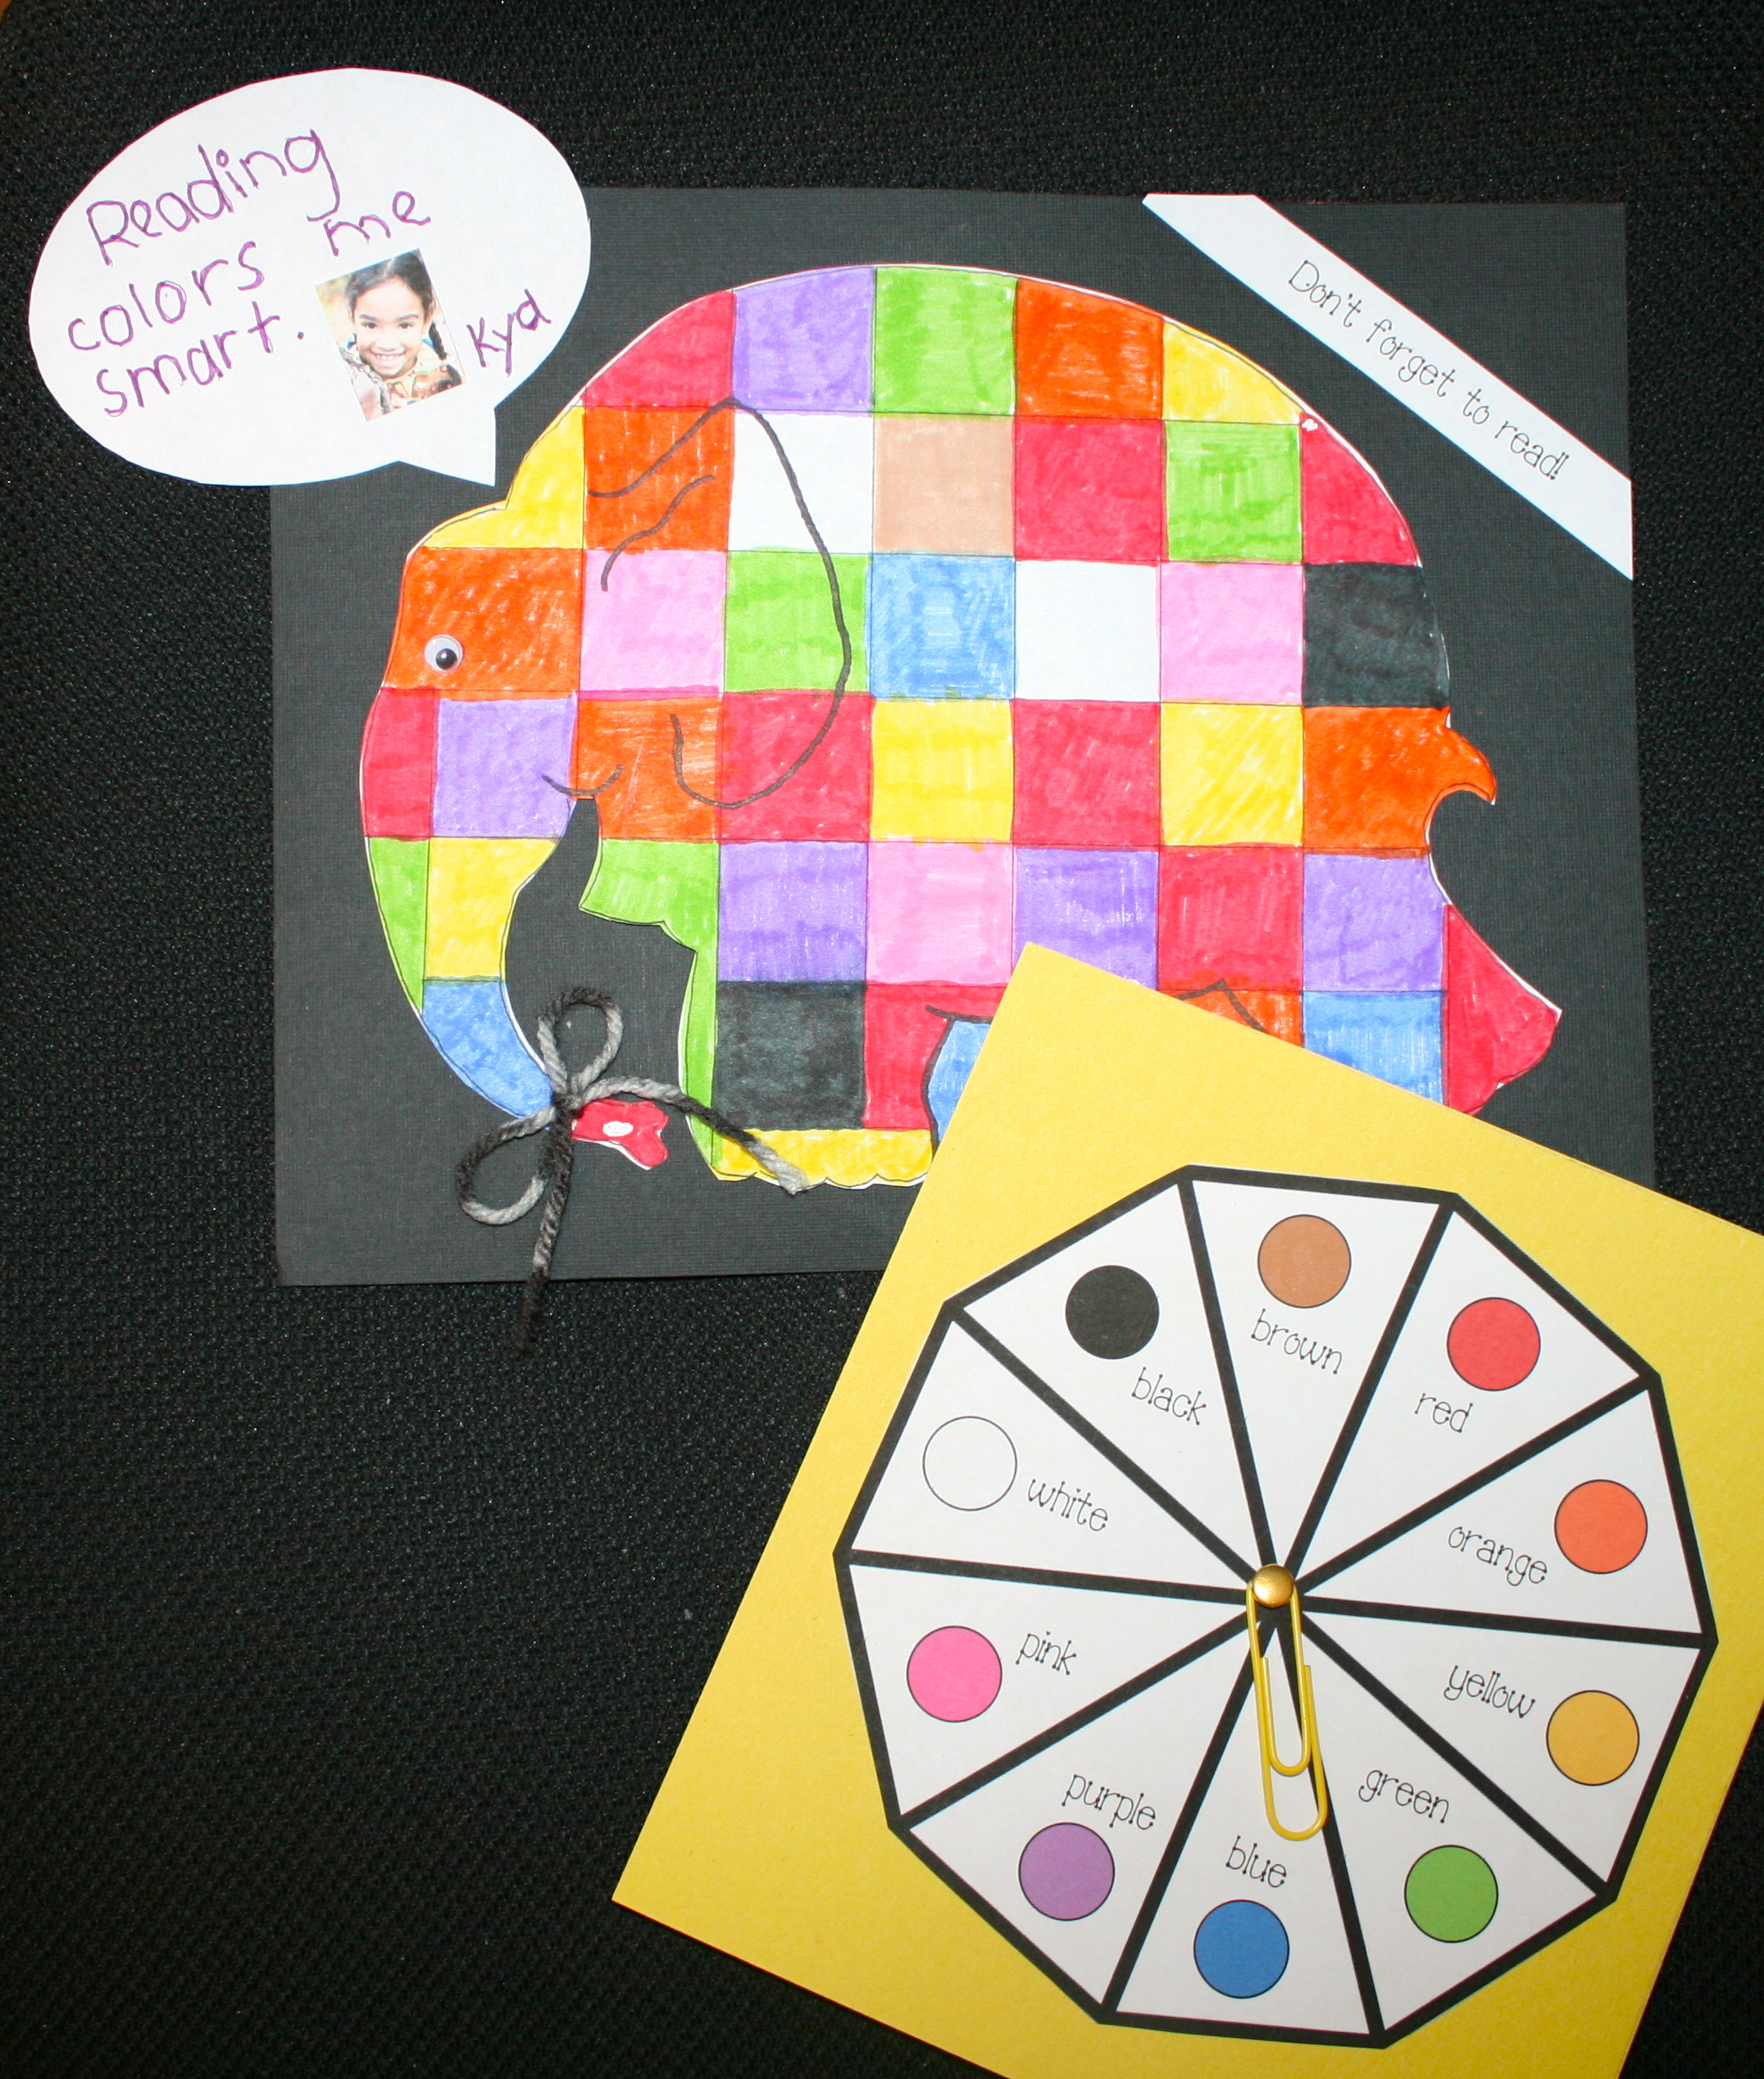 elmer the elephant activities, horton activities, seuss activities, elmer the elephant crafts, seuss crafts, horton crafts, elmer writing prompts, seuss writing prompts, horton writing prompts, horton bulletin boards, elmer the elephant bulletin boards, seuss bulletin boards, march bulletin boards, march is reading month bulletin boards, spring bulletin boards, elephant bulletin boards, elephant mask, elephant crafts, elephant activities, common core state standards for kindergarten, common core state standards for 1st grade, seuss games, horton games, elmer the elephant games, end punctuation activities, capitalization activities, color games, color cards, character setting event cards, beggining middle and end anchor chart